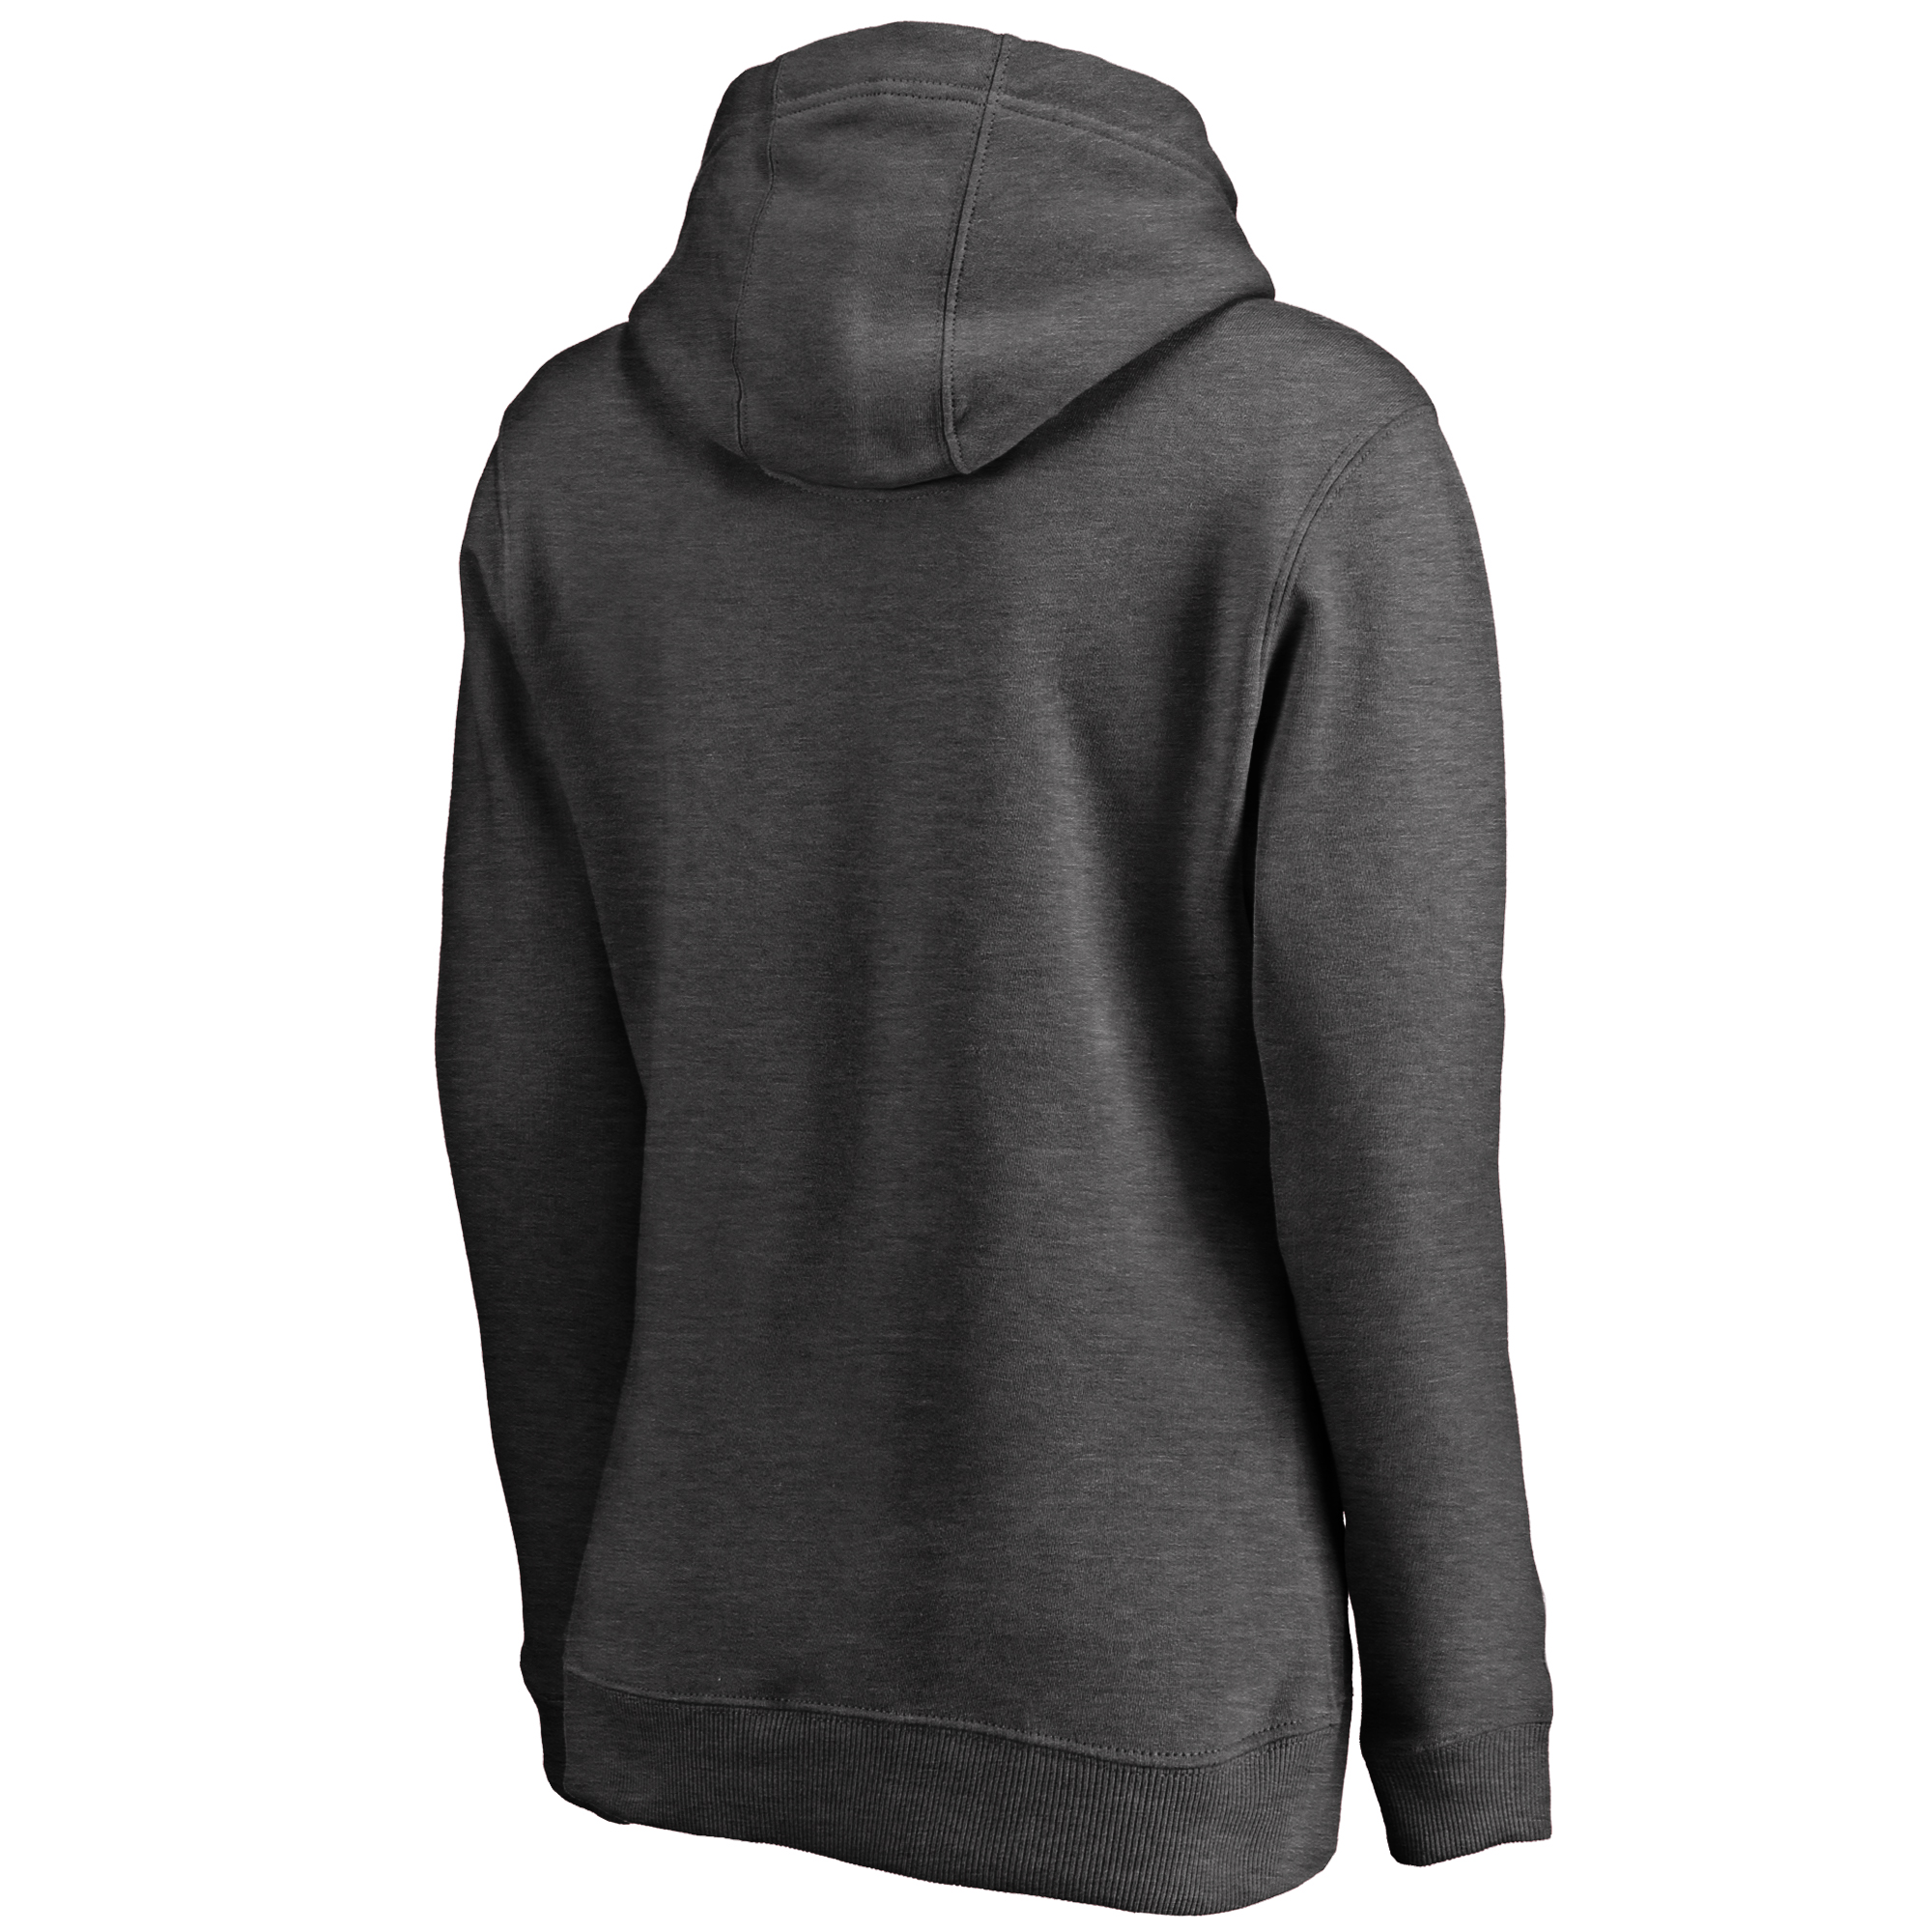 20f59212 Jacksonville Jaguars NFL Pro Line Women's First String Pullover Hoodie -  Dark Heathered Gray